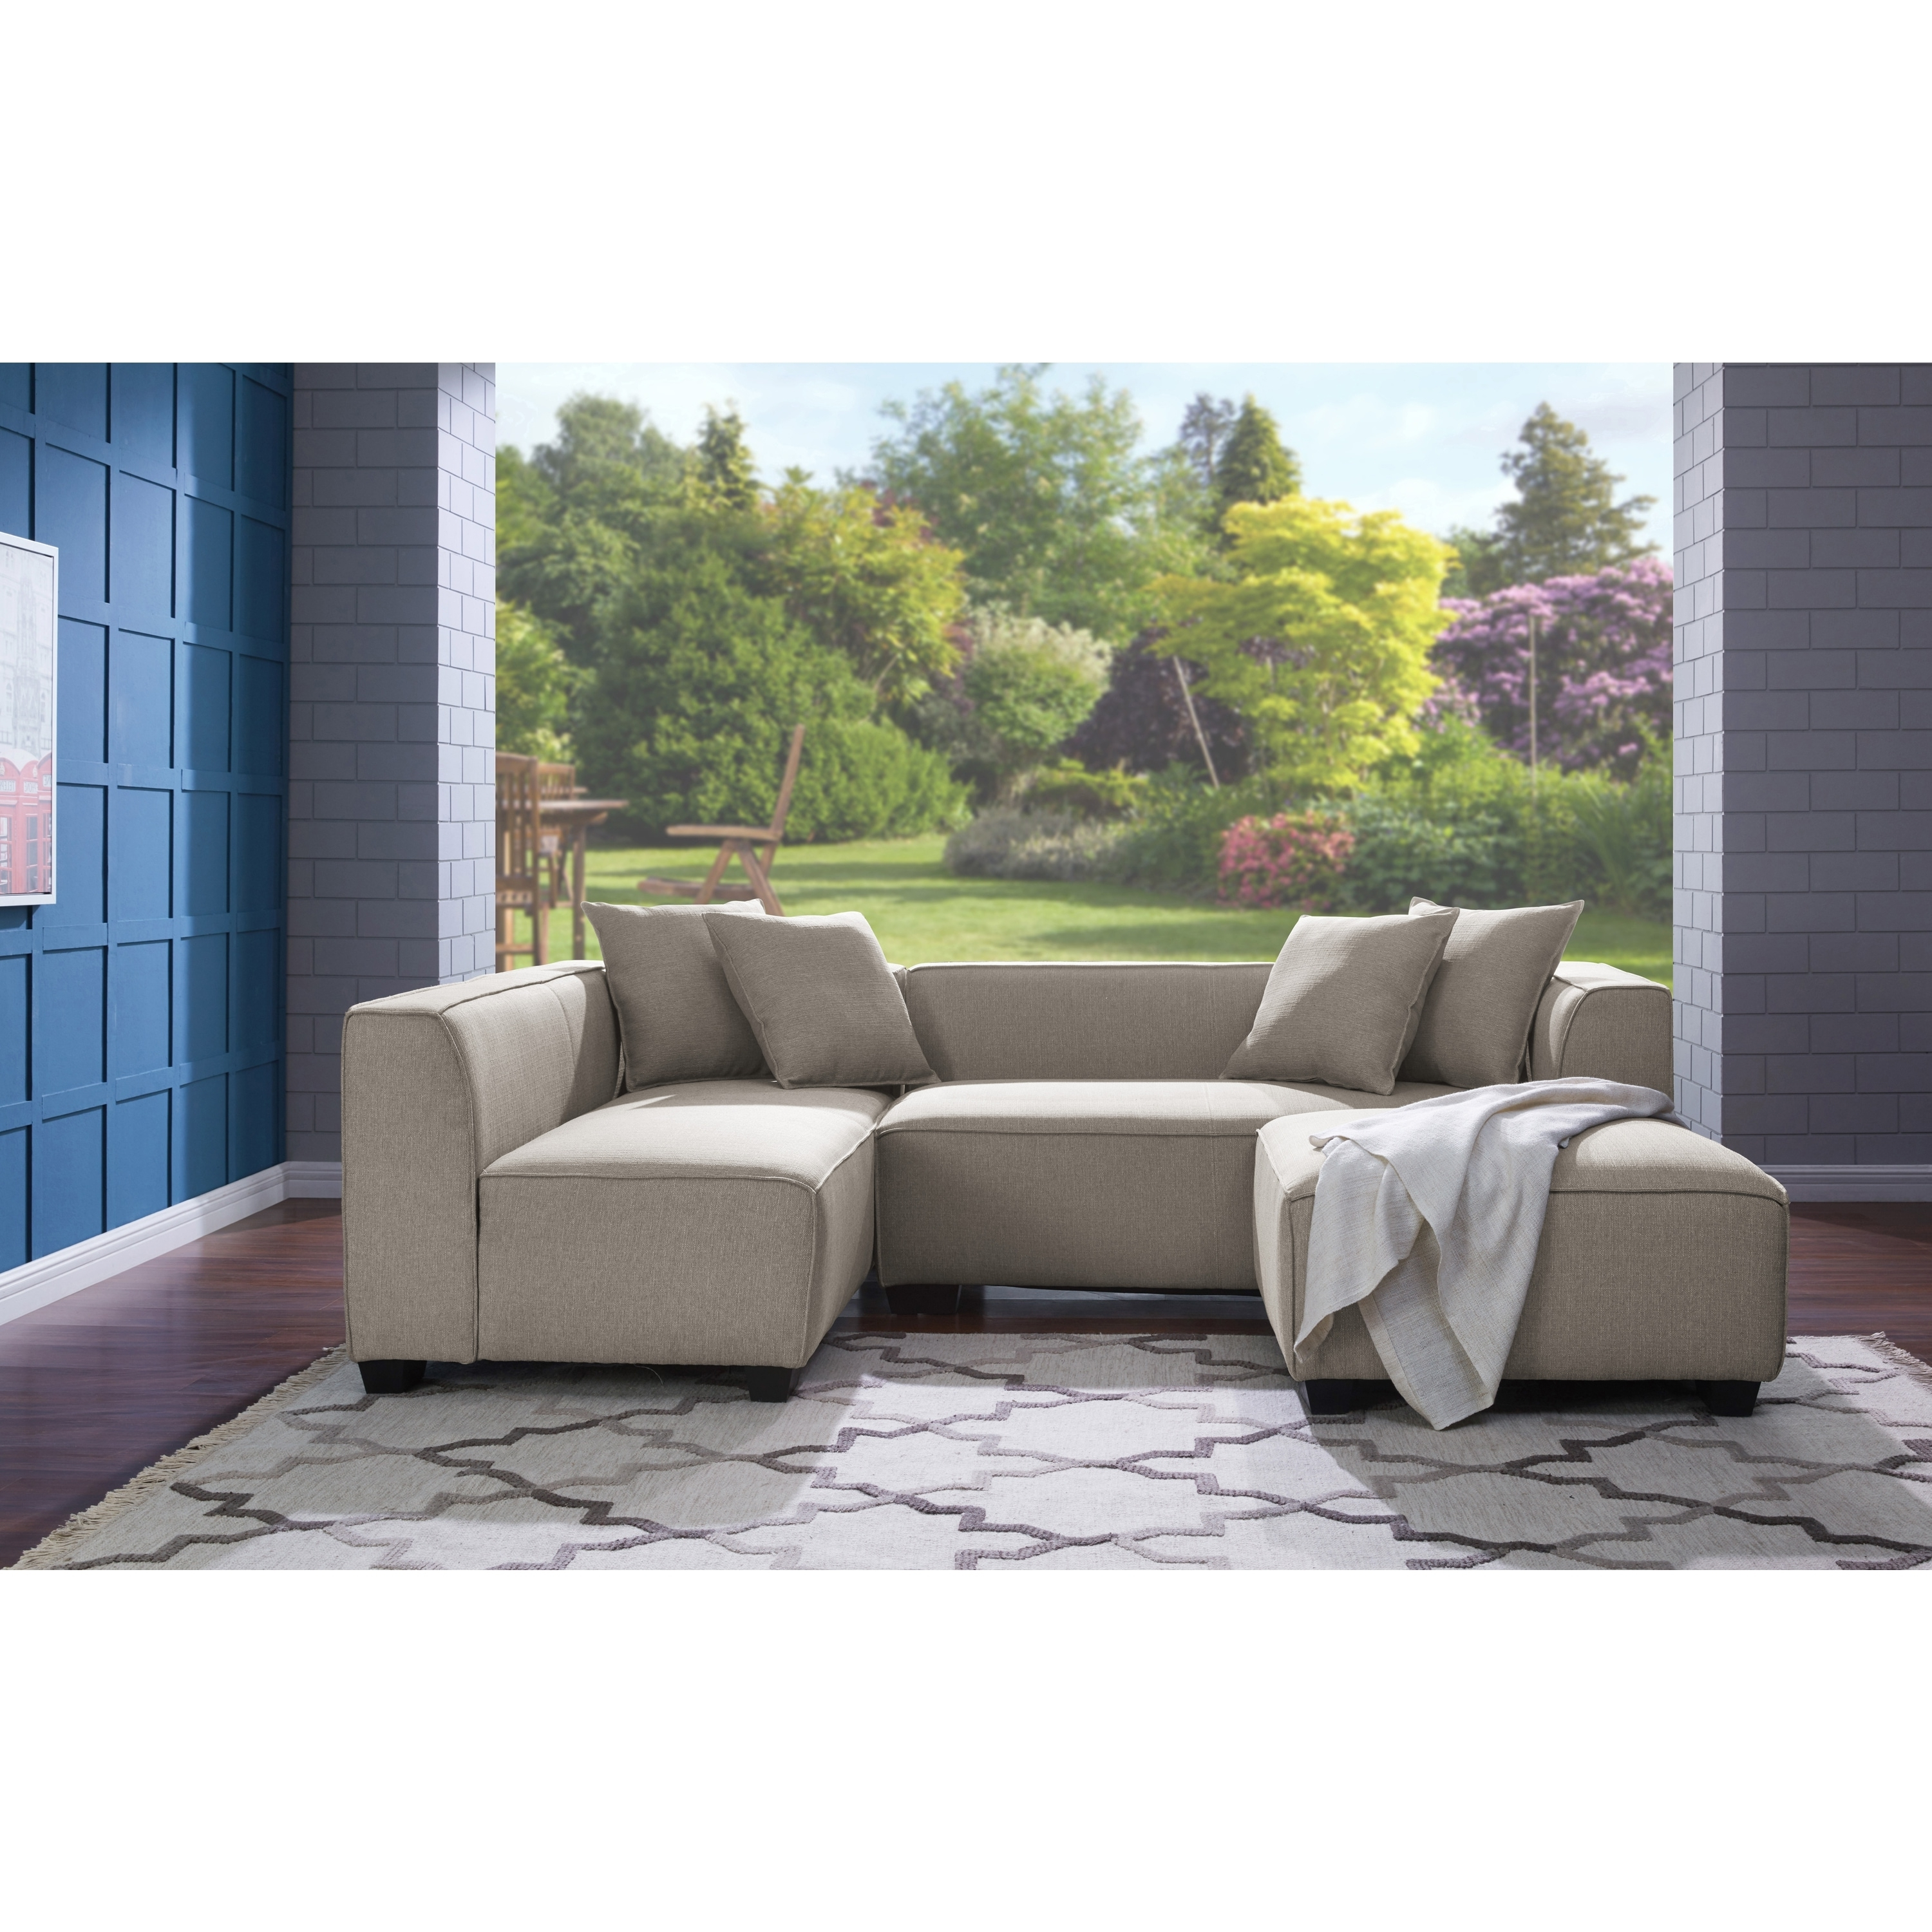 Widely Used Phoenix Sectional Sofas With Handy Living Phoenix Barley Tan Sectional Sofa With Ottoman – Free (View 20 of 20)